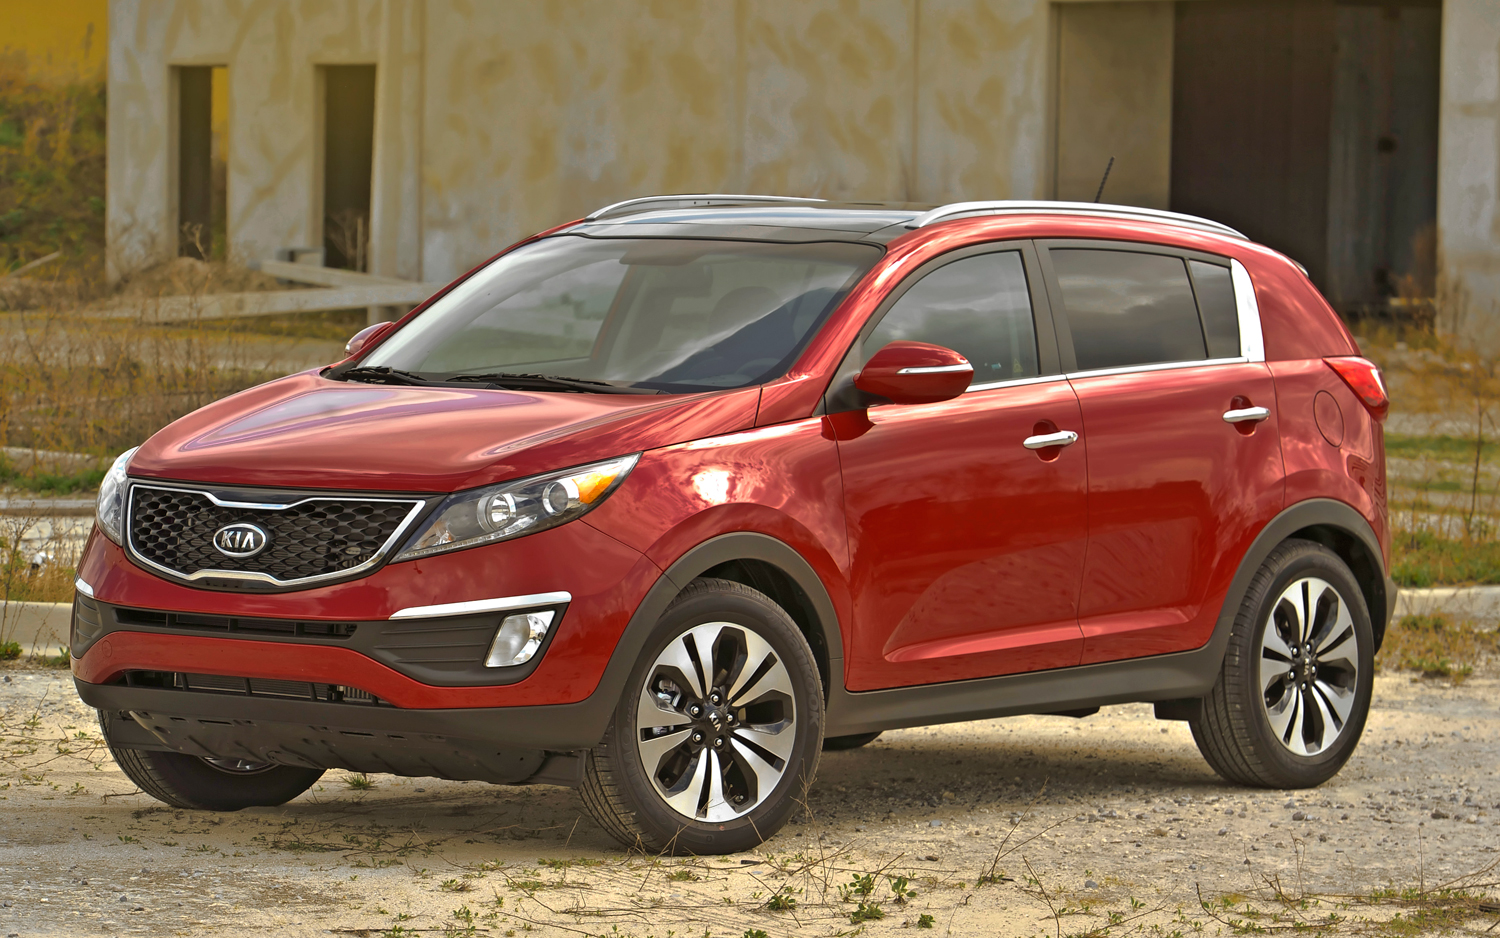 Most Wanted Cars: Kia-Sportage 2013